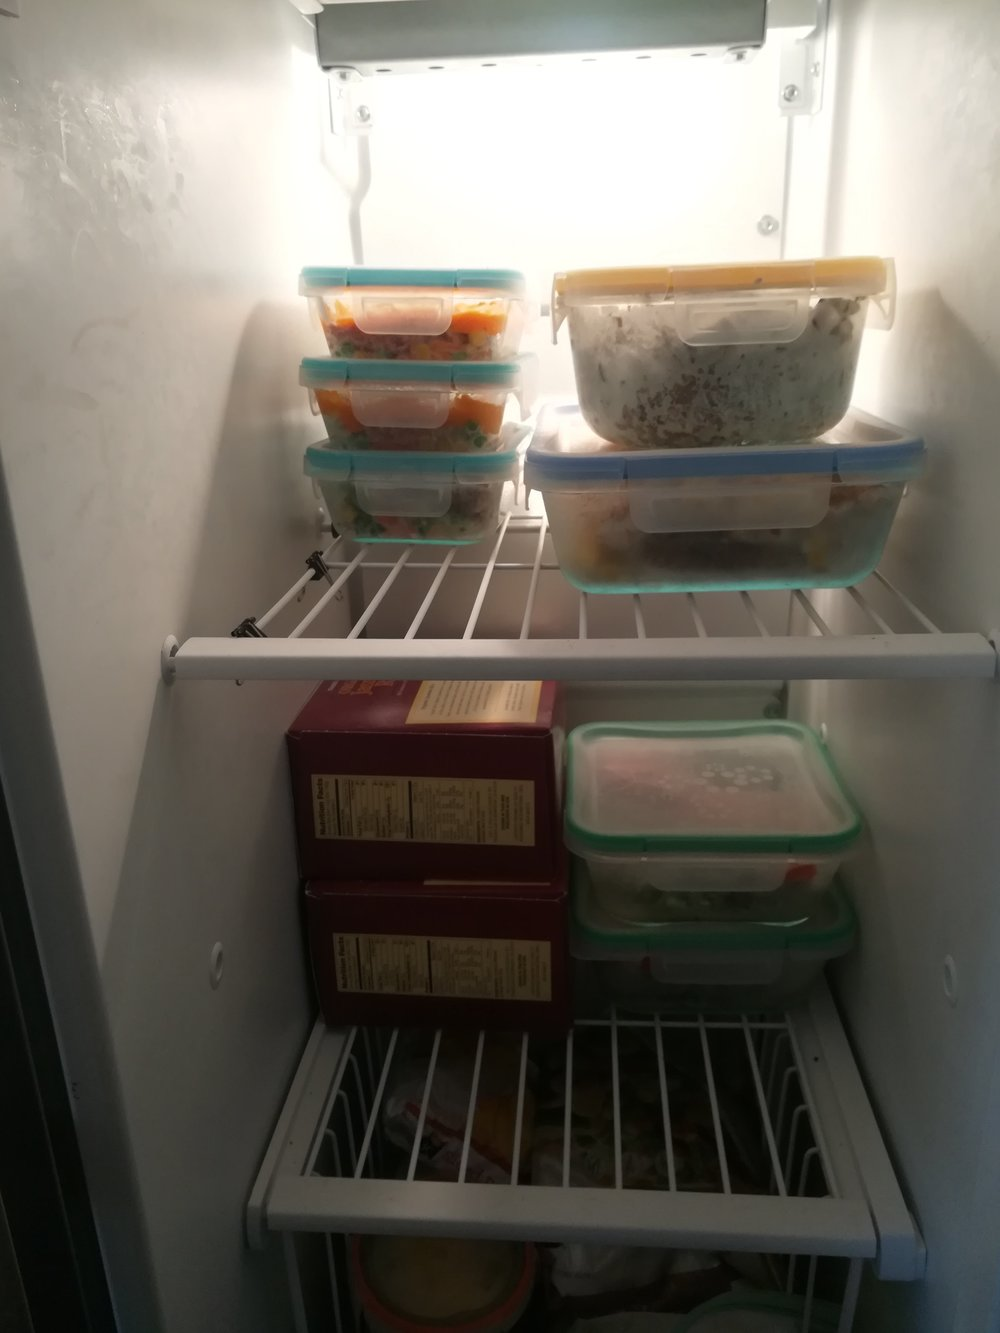 How does this look in our freezer? We have a few special meals, and it's easy to grab-and-go.